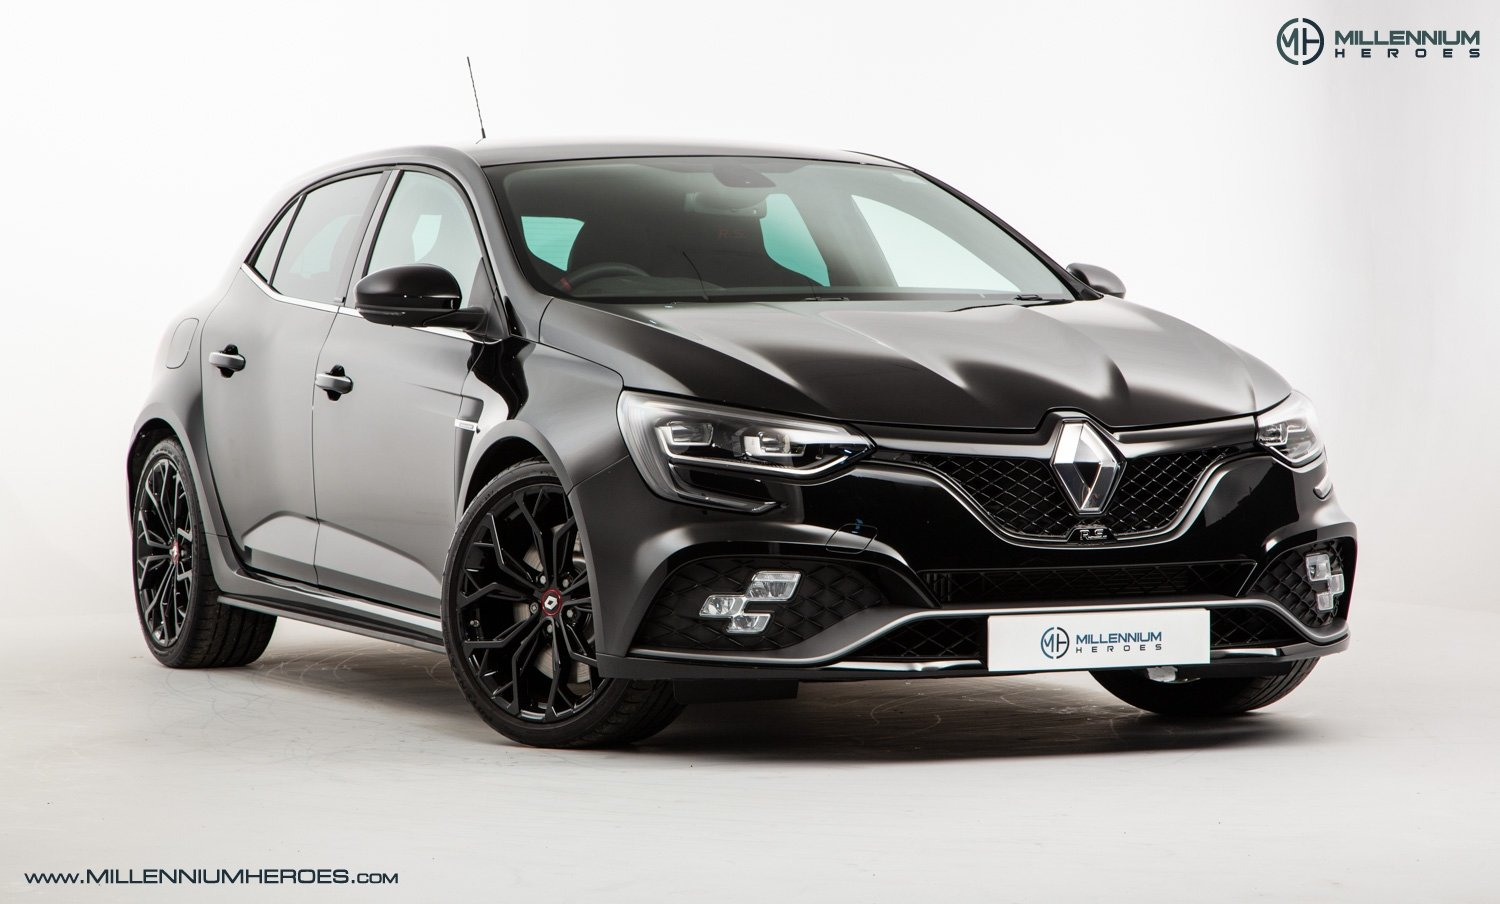 2019 RENAULT MEGANE R.S.280  For Sale (picture 3 of 16)